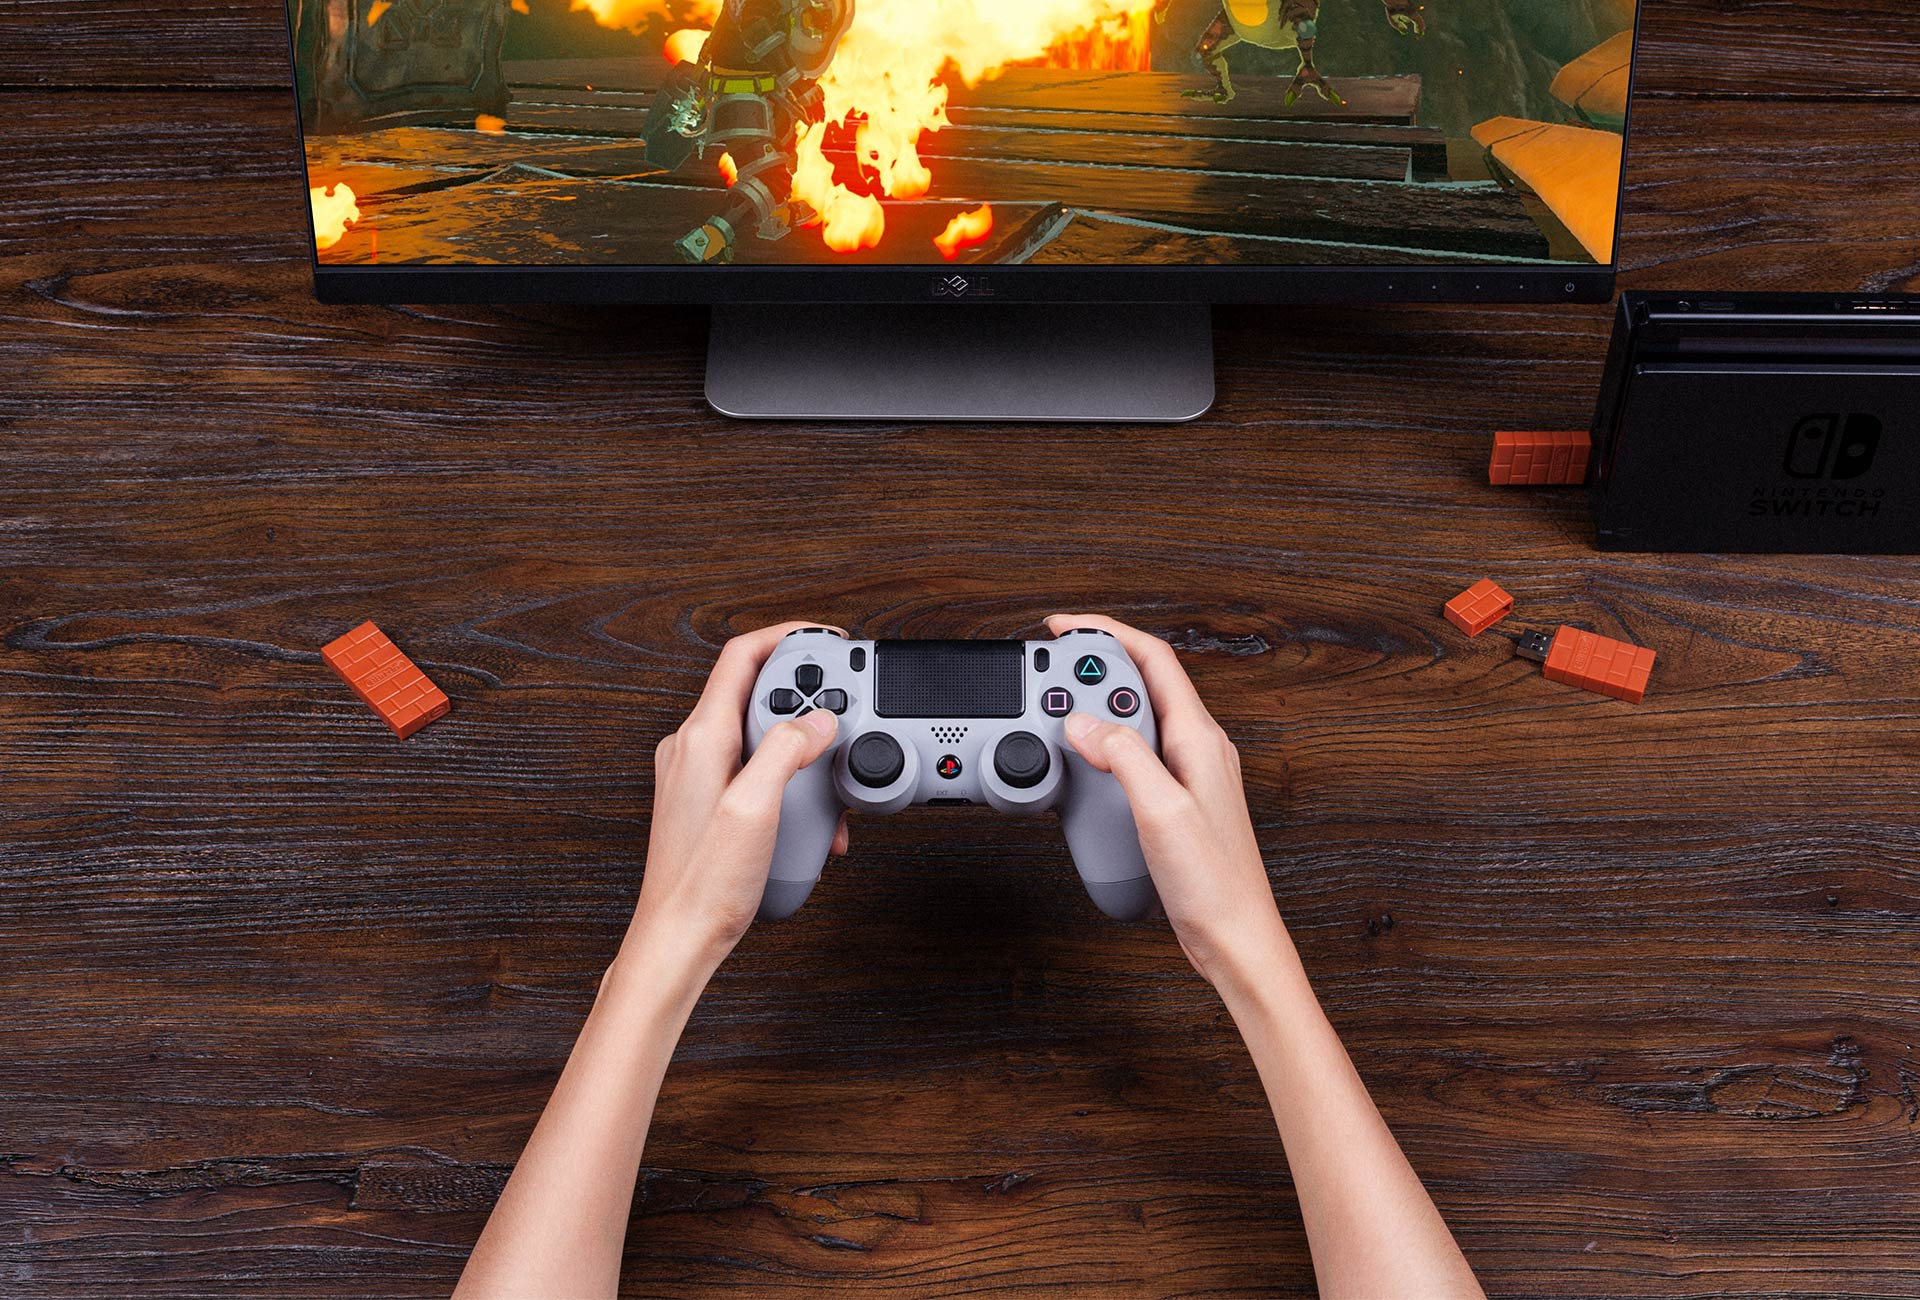 8bitdo Wireless Usb Adapter Ps3 Controller Wiring Diagram Compatible With All Bluetooth Controllers Next Gen Too The